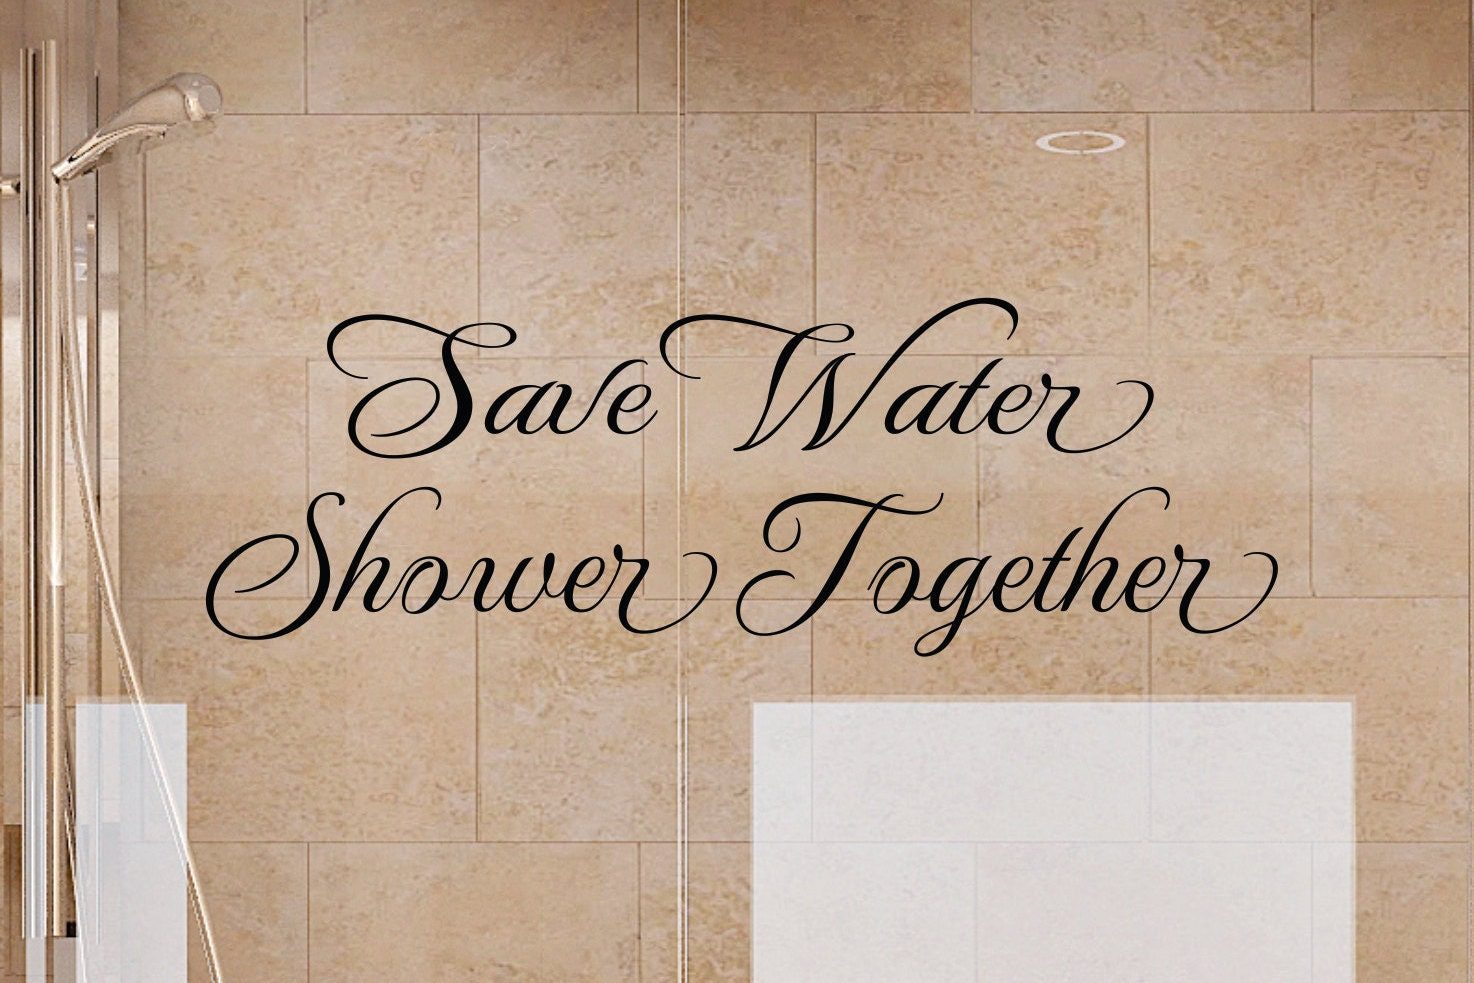 Bathroom Wall Decals   Save Water Shower Together 2 Bathroom Wall Decal    Bathroom Decor  Bathroom Wall Decor  Bathroom Art